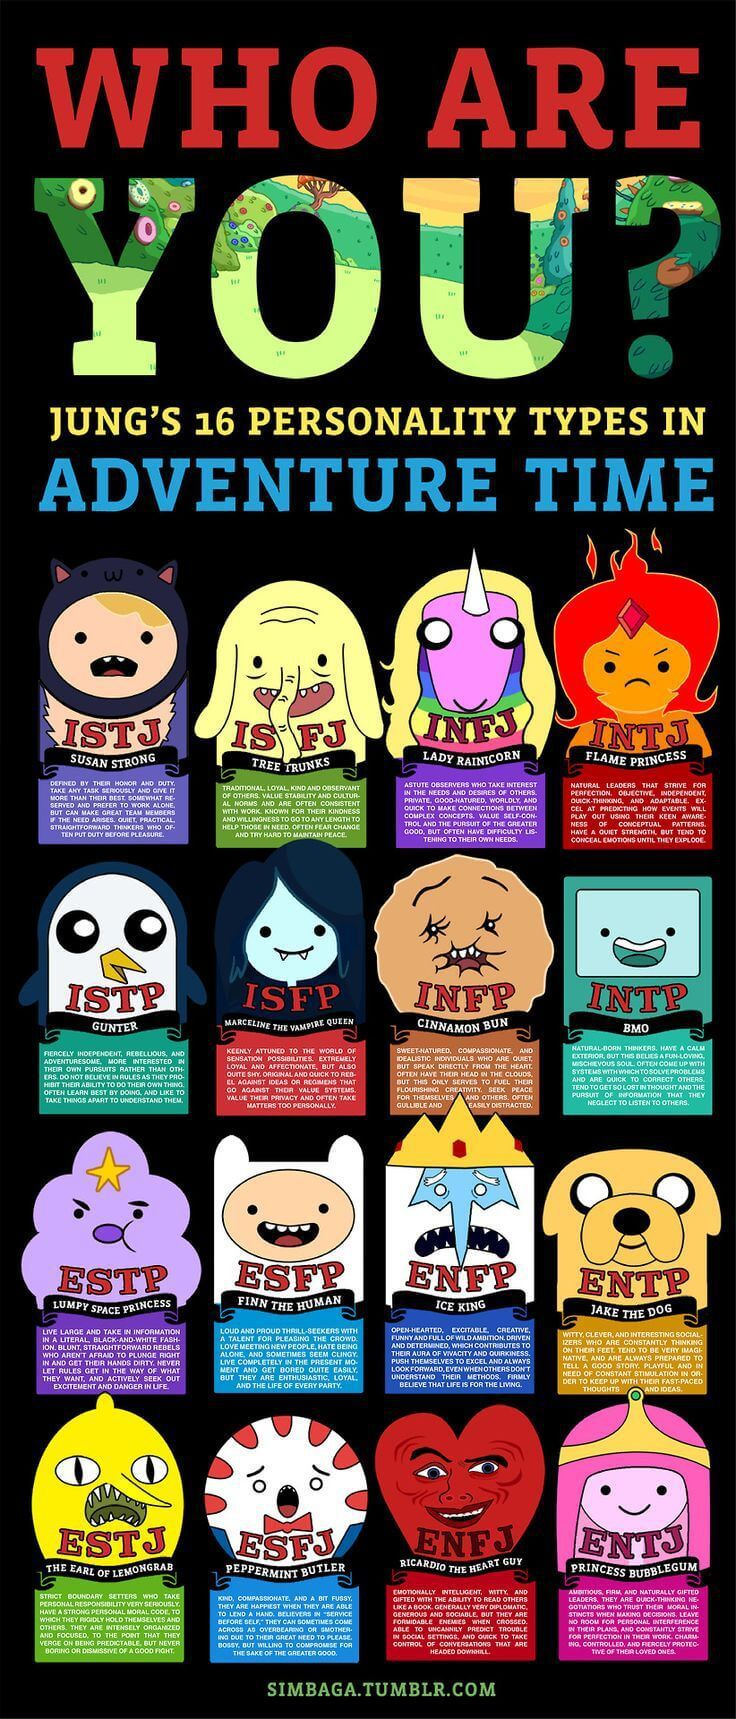 11 Fun Mbti Charts Personalty Types For Geeks 8 Bit Nerds Adventure Time Adventure Jake The Dogs